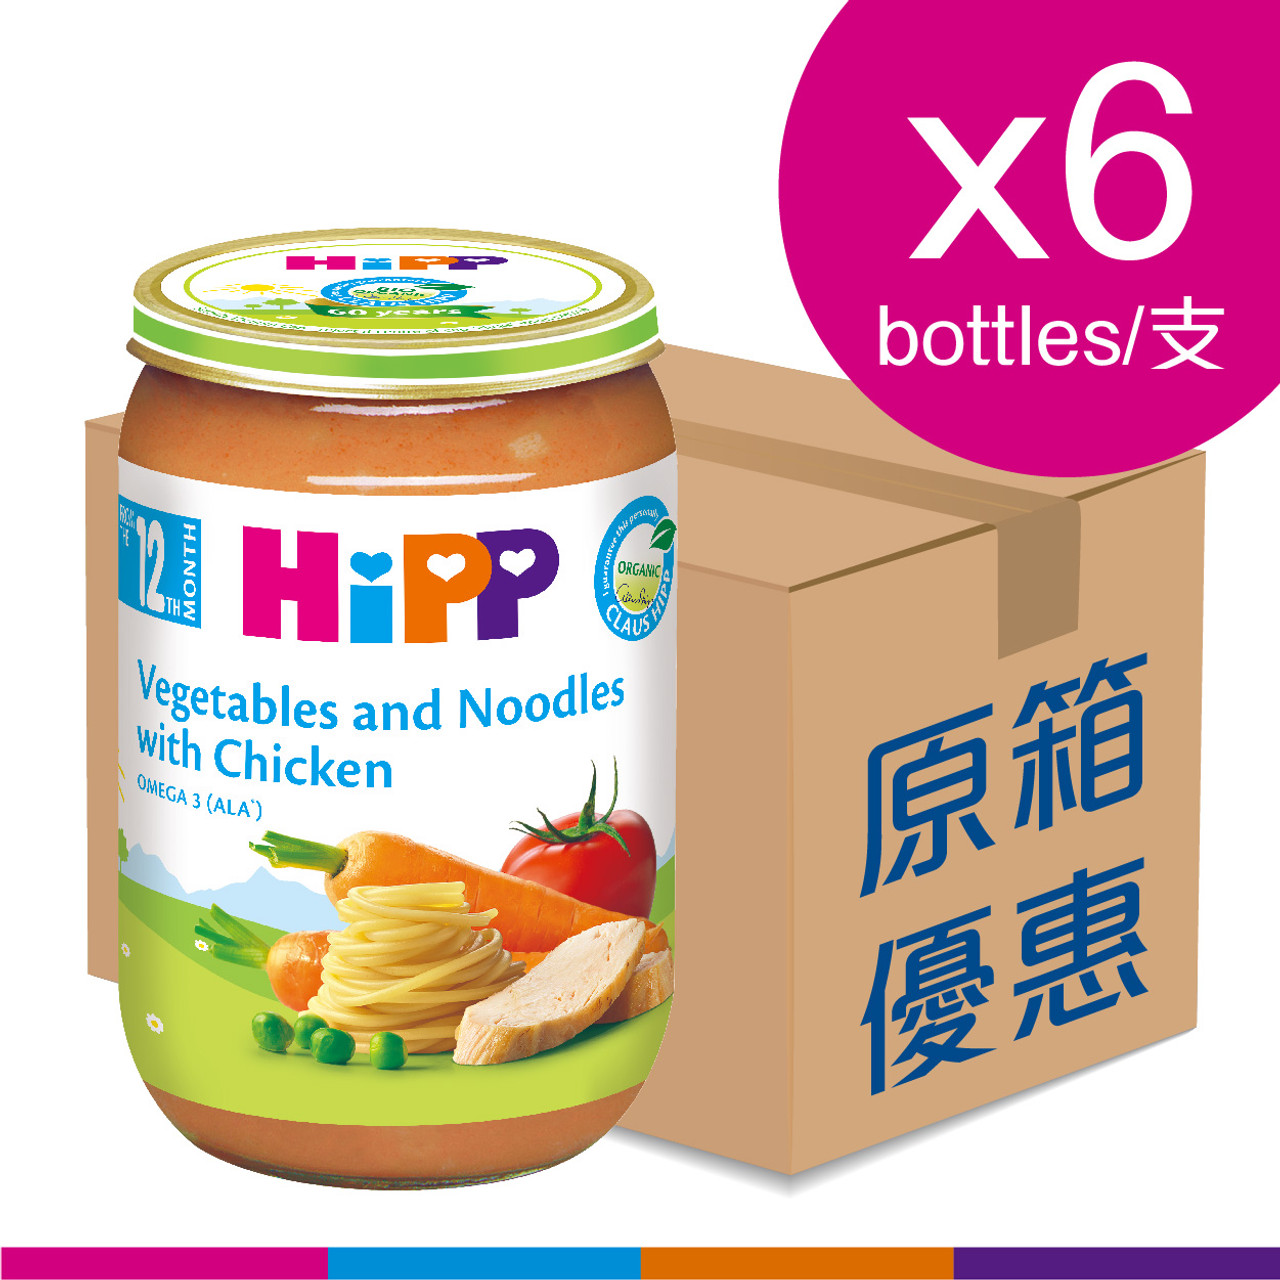 HiPP 喜寶有機蔬菜雞肉伴麵條 (220克) 6樽裝(圖片只供參考) | HiPP Vegetables and Noodles with Chicken (220g) 6 pcs package (Photo for reference only)